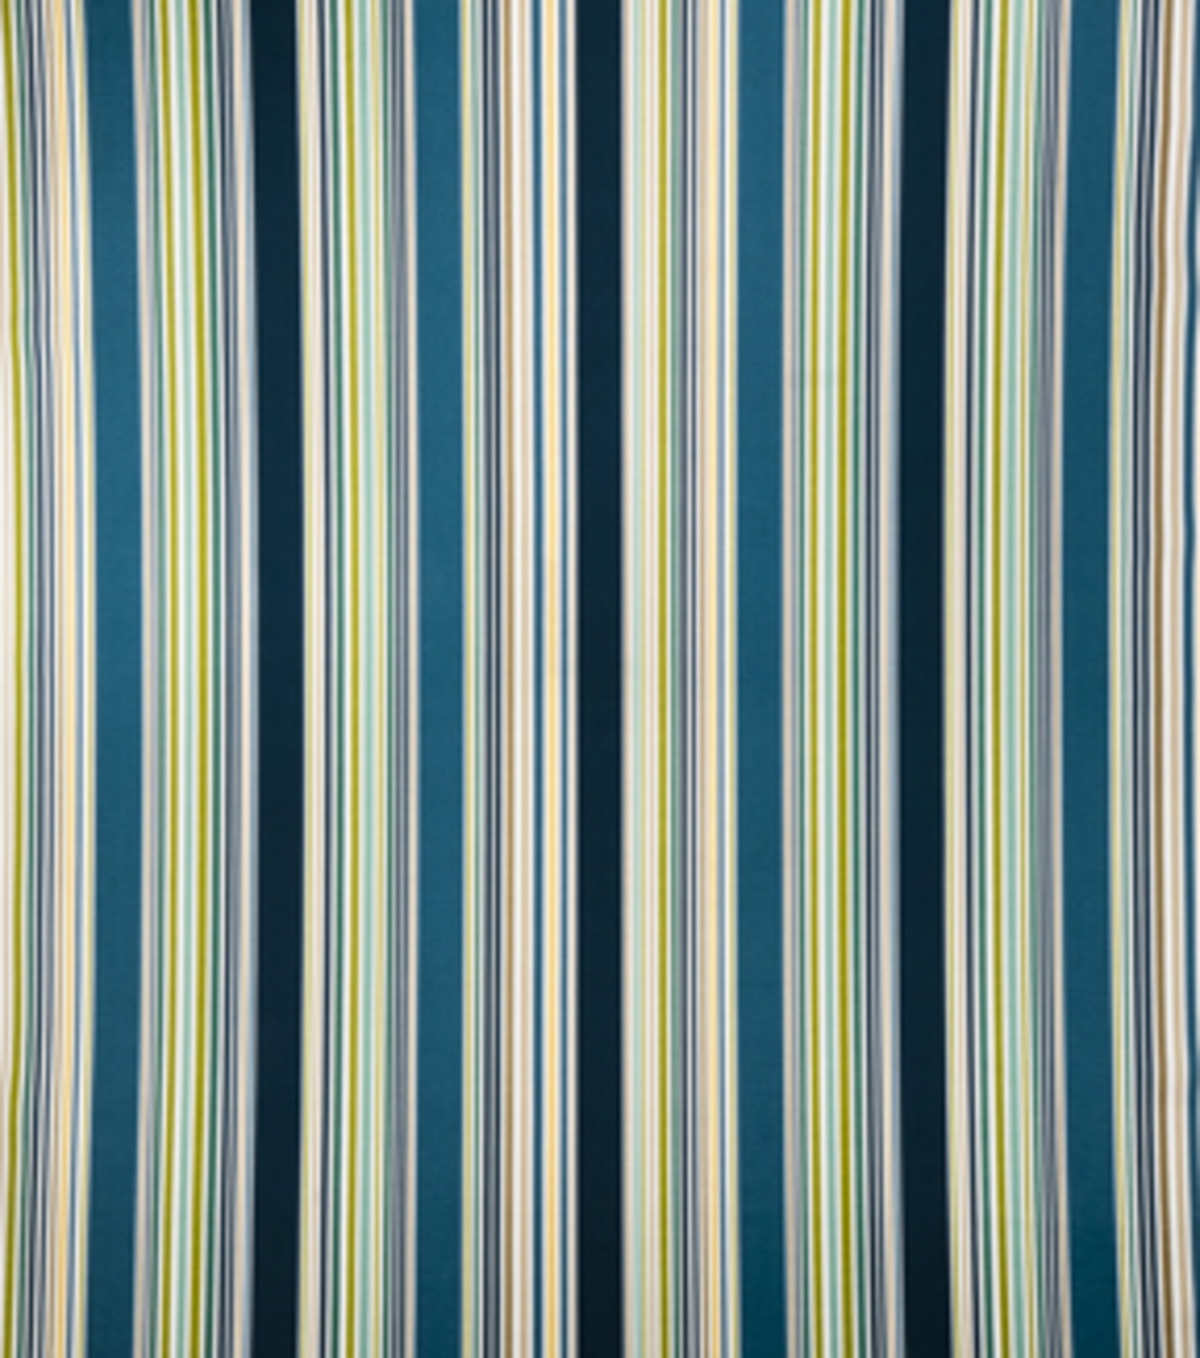 Home Decor 8\u0022x8\u0022 Fabric Swatch-Eaton Square Gull Bermuda Blue